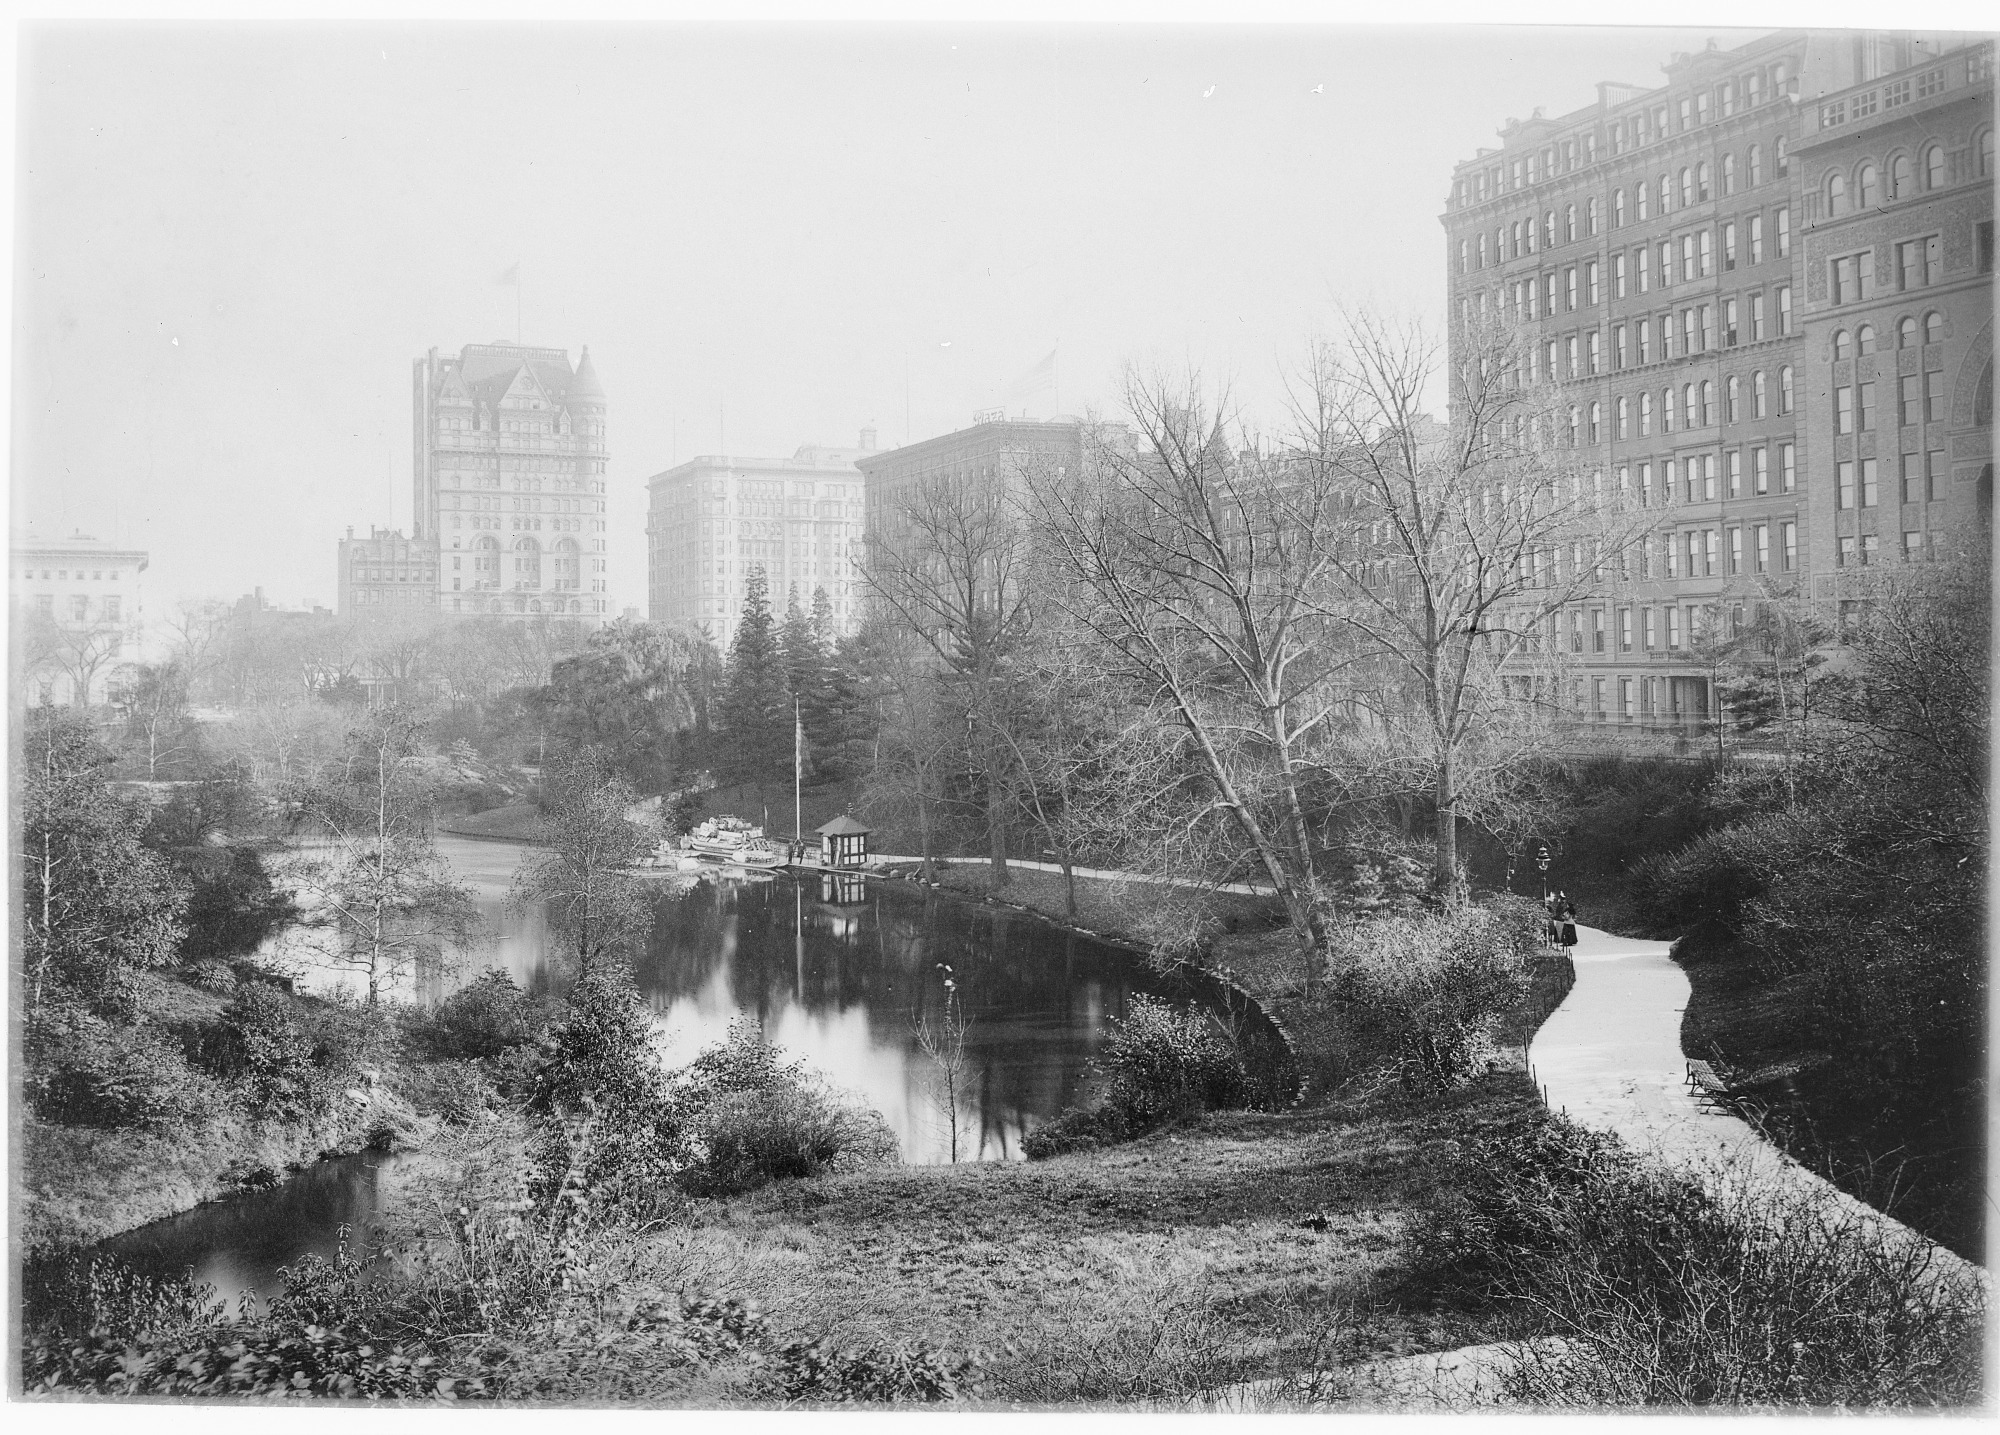 Black and white image of New York's Central Park.